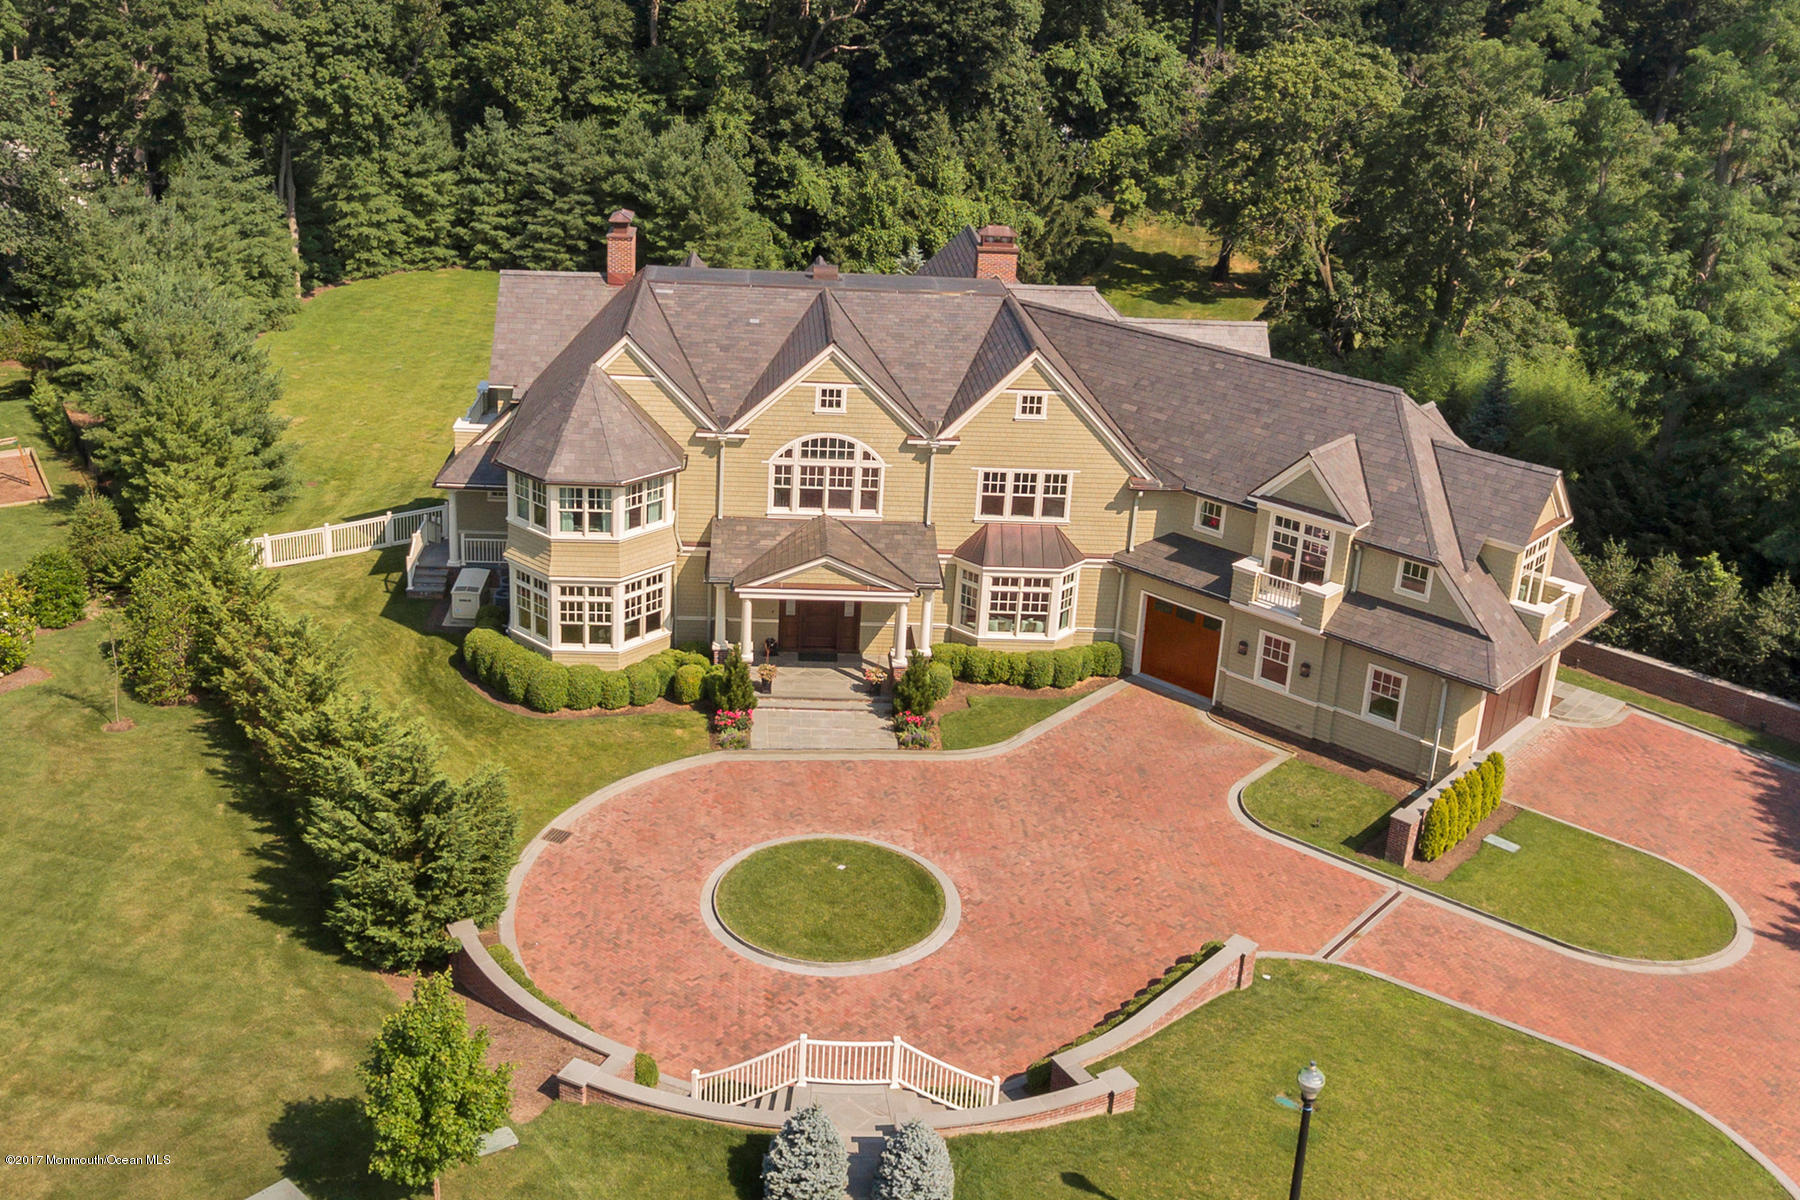 11 SUGAR MAPLE LANE, RUMSON, NJ 07760